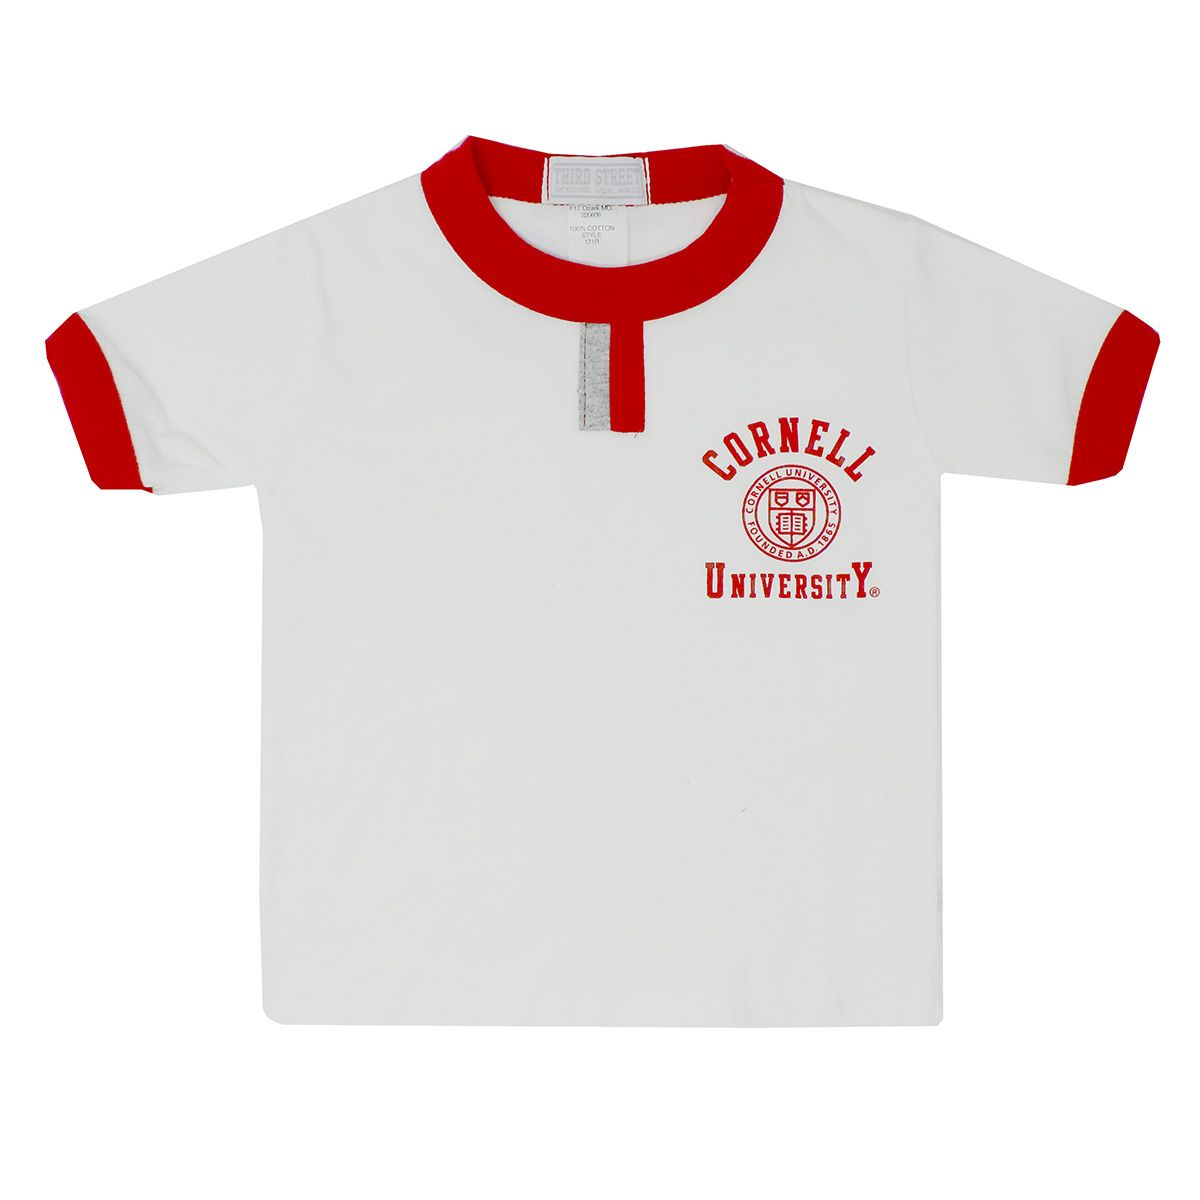 Toddler Tee White With Red Trim Toddler Tees Tees Mens Tops